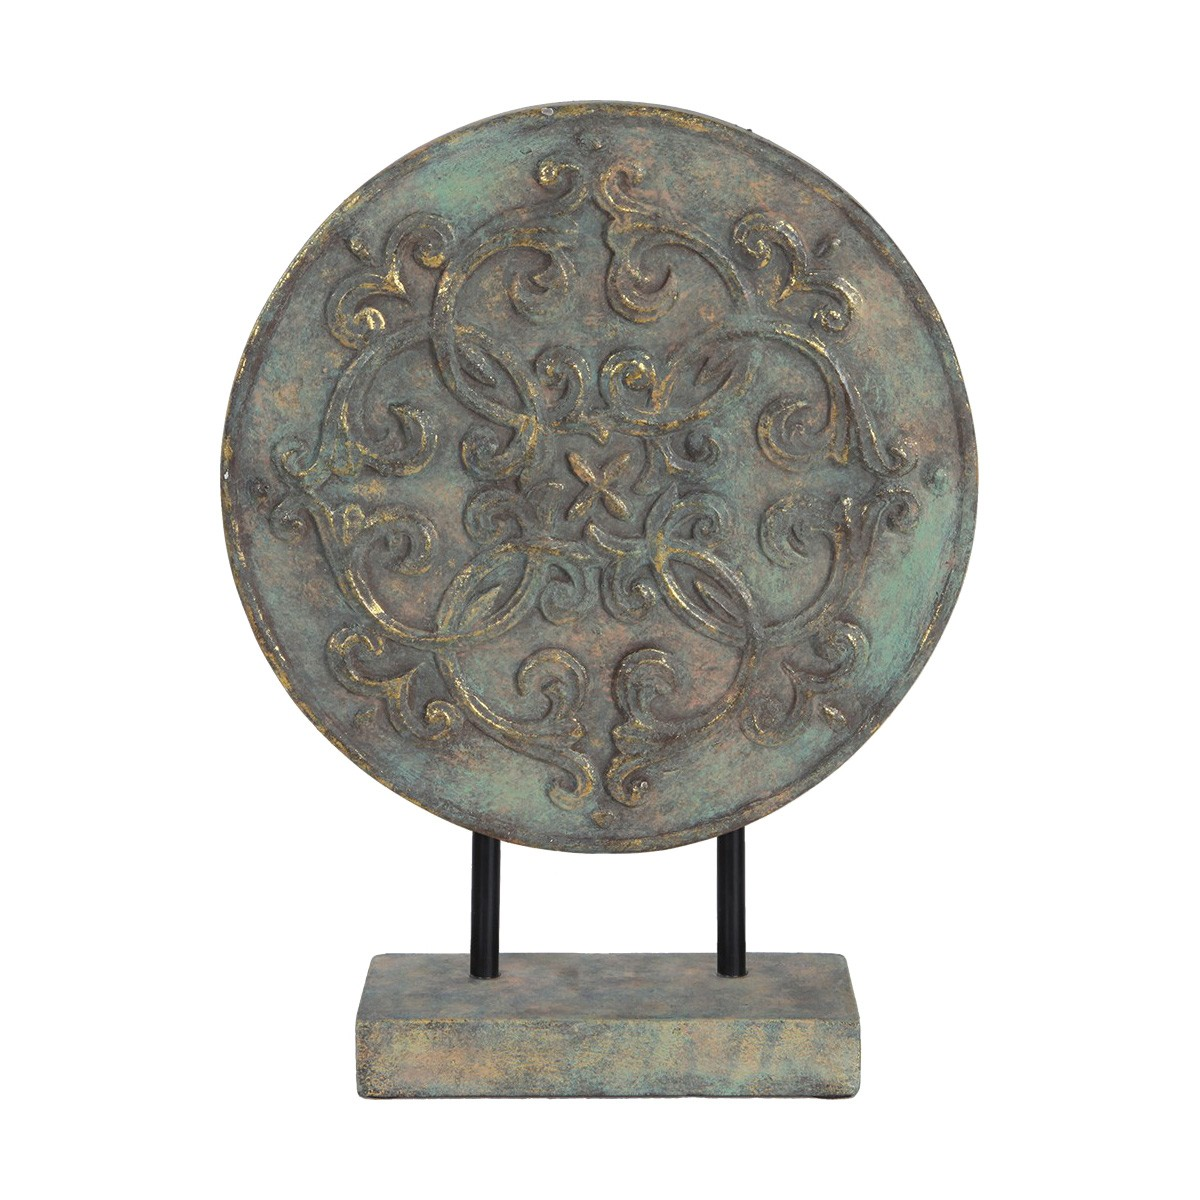 Lustre Embossed Ceramic Round Plaque Table Decor